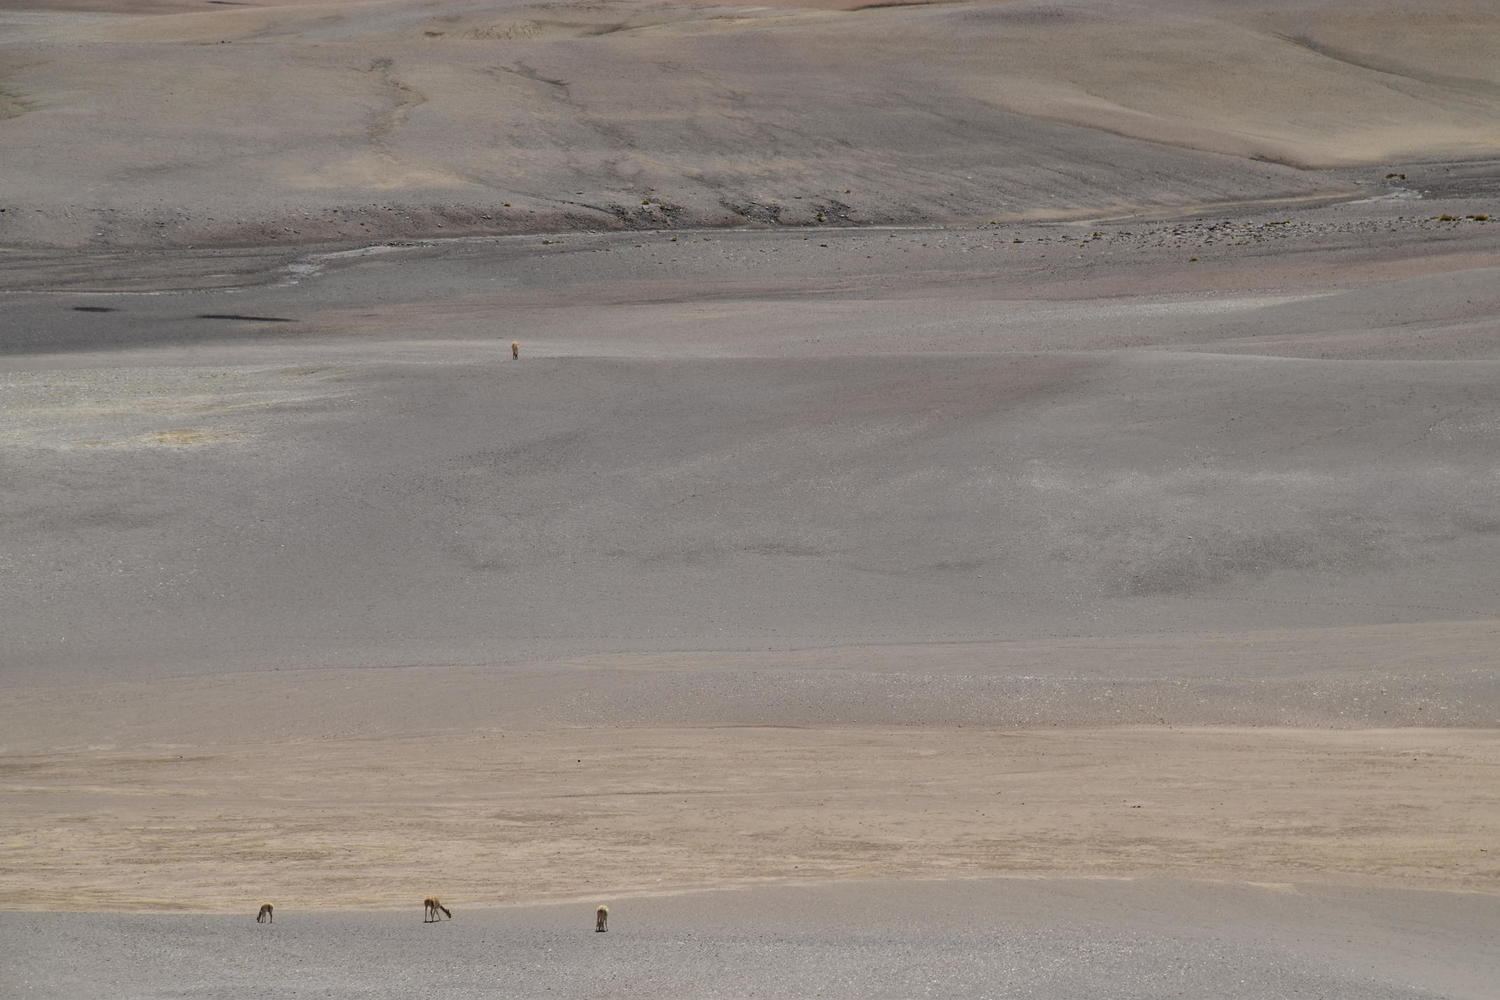 The wide open landscapes of Chile's Atacama Desert